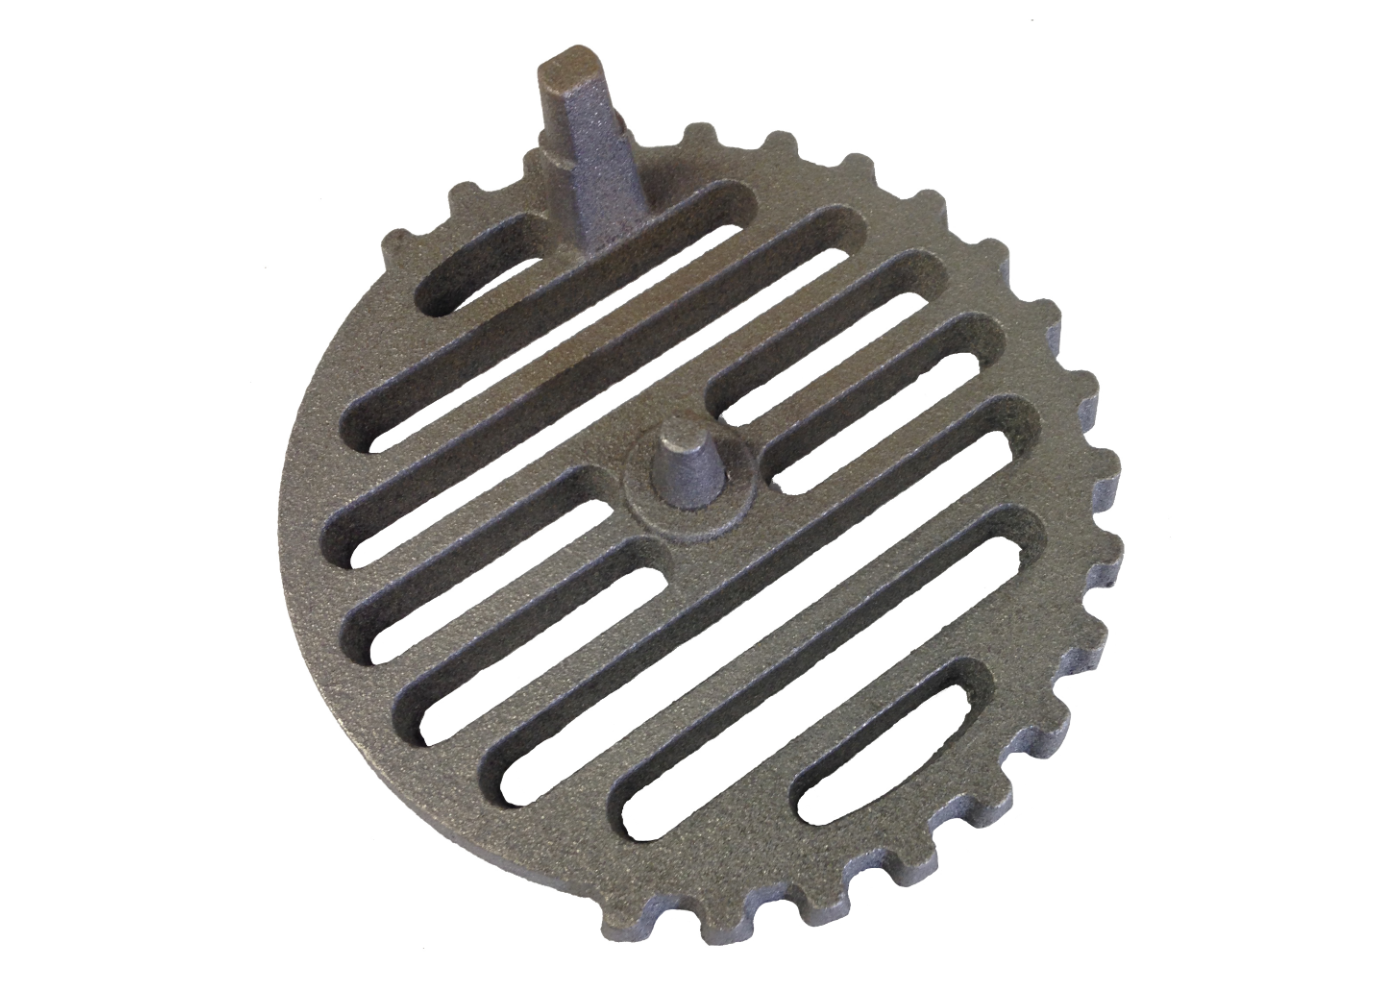 A replacement Grate suitable for Franco Belge Belfort stoves.